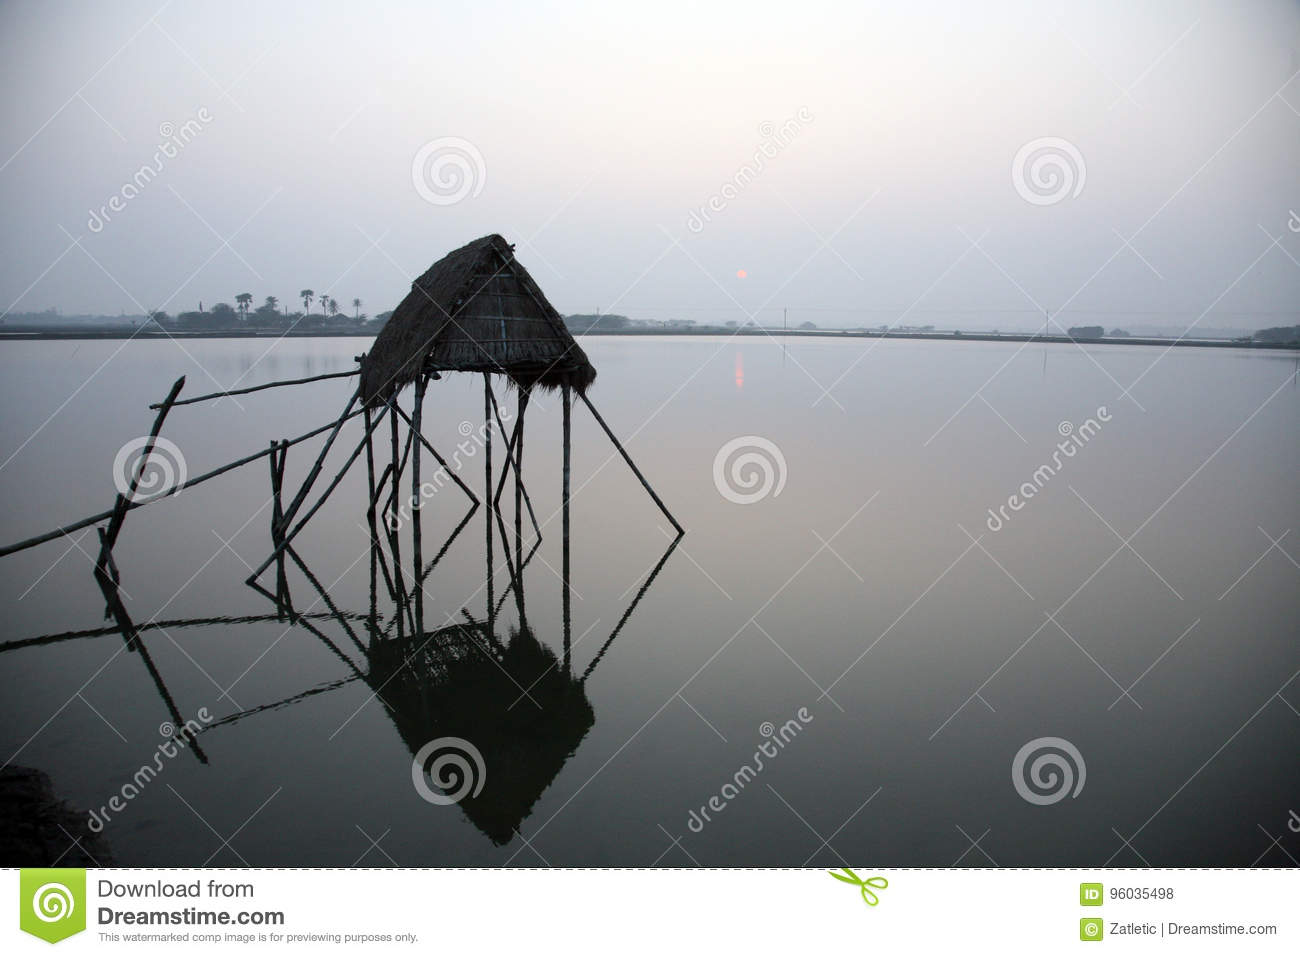 Modest straw hut of Indian fishermen in the Ganges, Sunderband, India